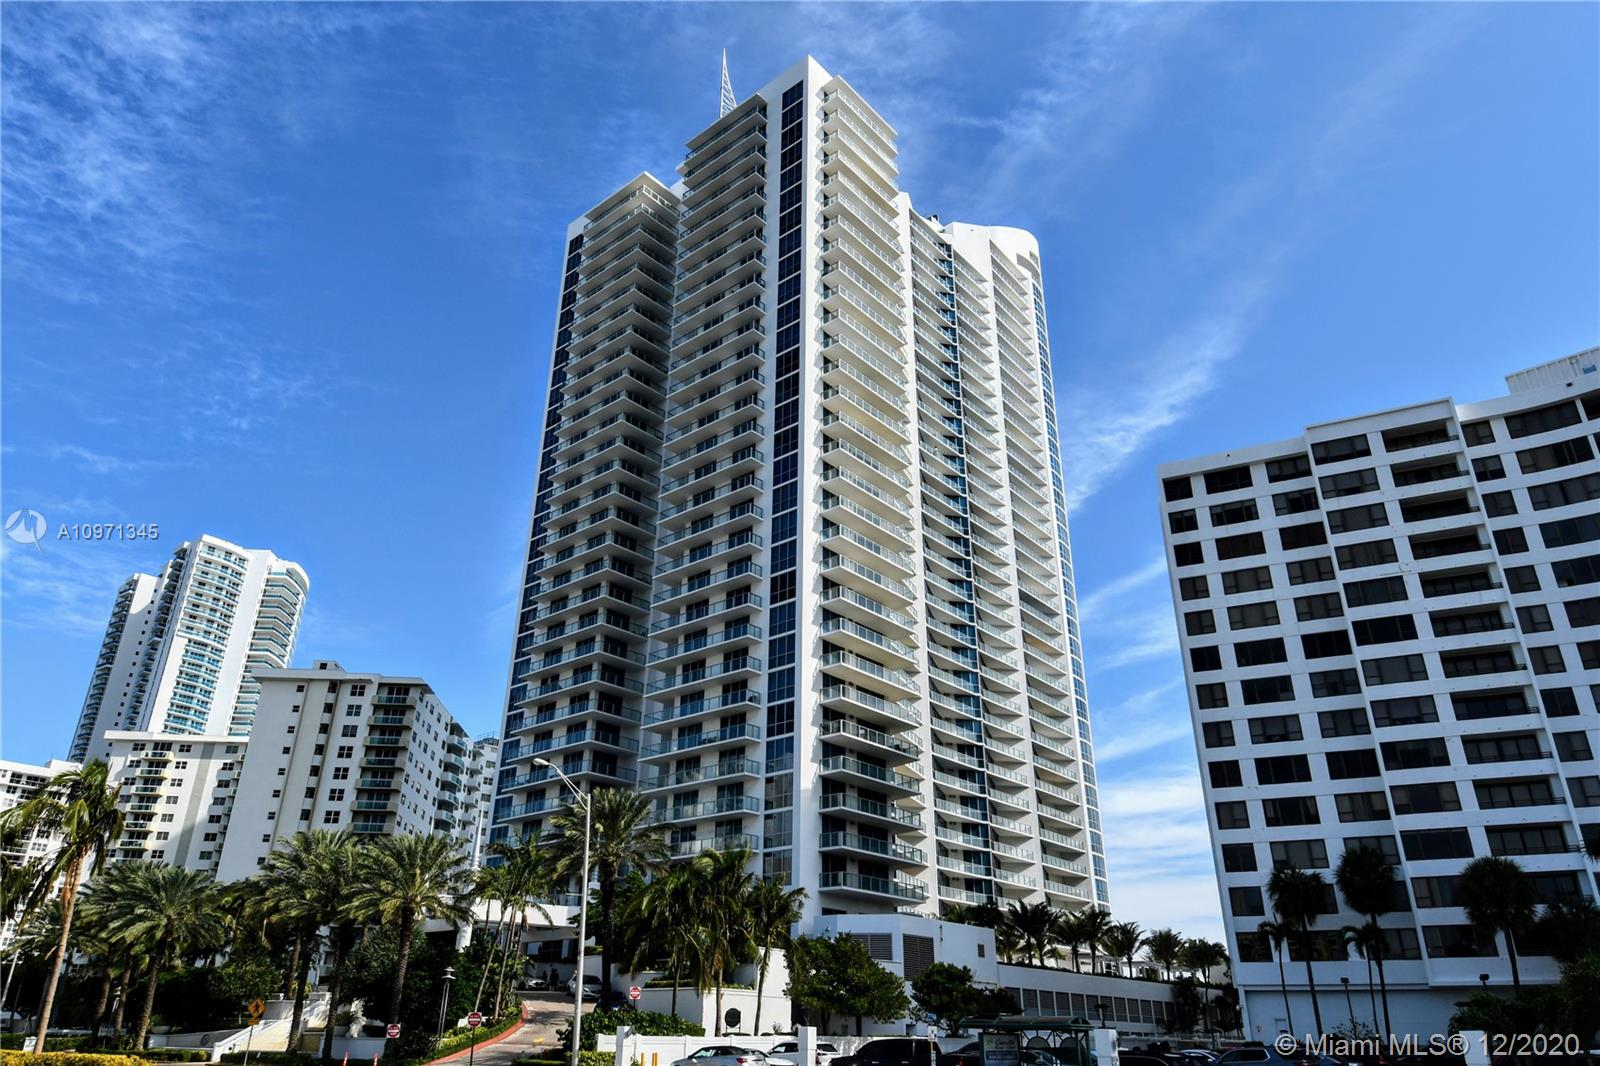 3 Bedrooms, 4.5 Bathrooms. Three oceanfront balconies offer sweeping direct ocean views. High end appliances and finishes. Private elevator opens to panoramic views of the ocean. Motorized shades, Sonos Sound System on all bedrooms and living space. Great size bedrooms. Beautiful Master Suite with double vanity in Bathroom, large Jacuzzi Style Tub and Separate Glass Rain-Shower. Walk-In closets on all Bedrooms with built in shelving. A 4th Bedroom can easily be created. Building includes resort style pool and spa, state of the art fitness center, tennis court, private theatre, outdoor summer kitchens, valet parking, beach and pool towel and chair service, club and billiard rooms all which are professionally maintained and recently renovated. Seller Financing Might be available.